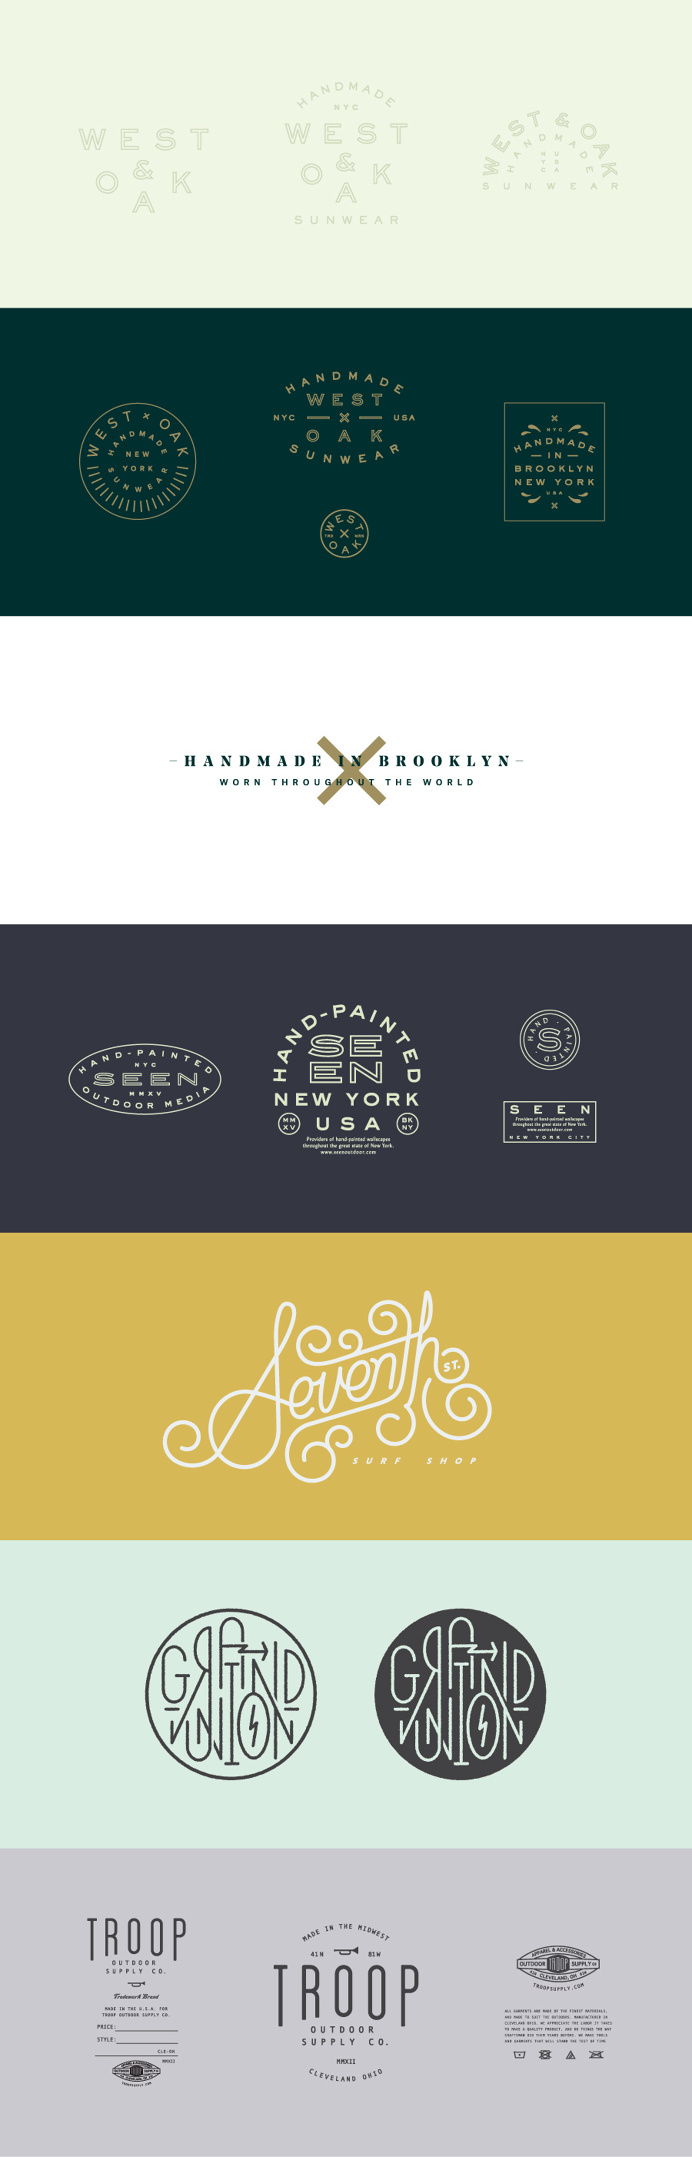 logo, identity, design, lettering, word mark, typography